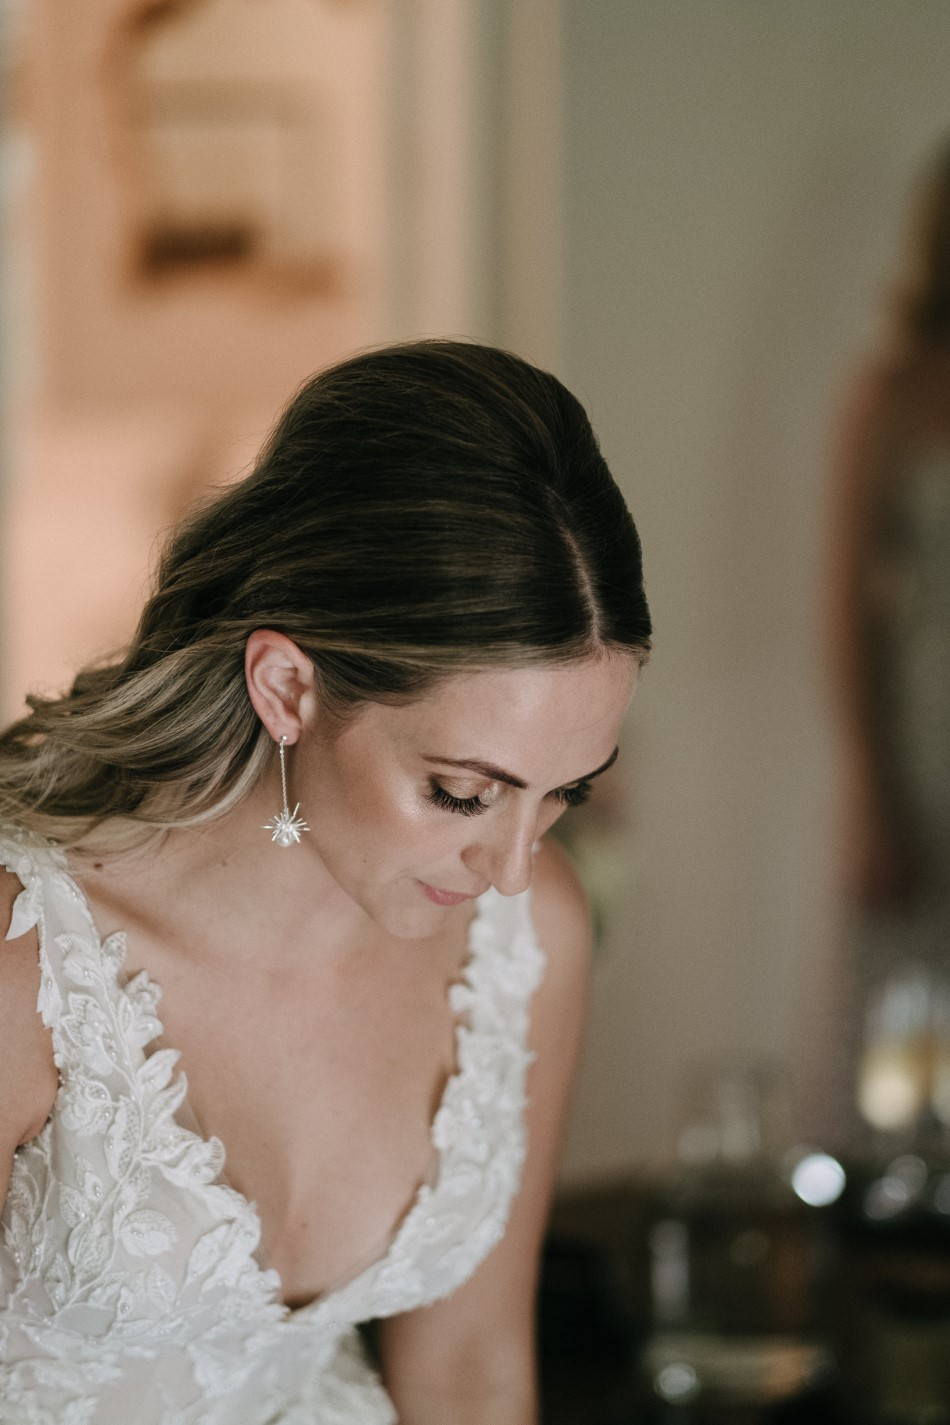 monique lawler makeup_shireshirewedding.com (5).jpg